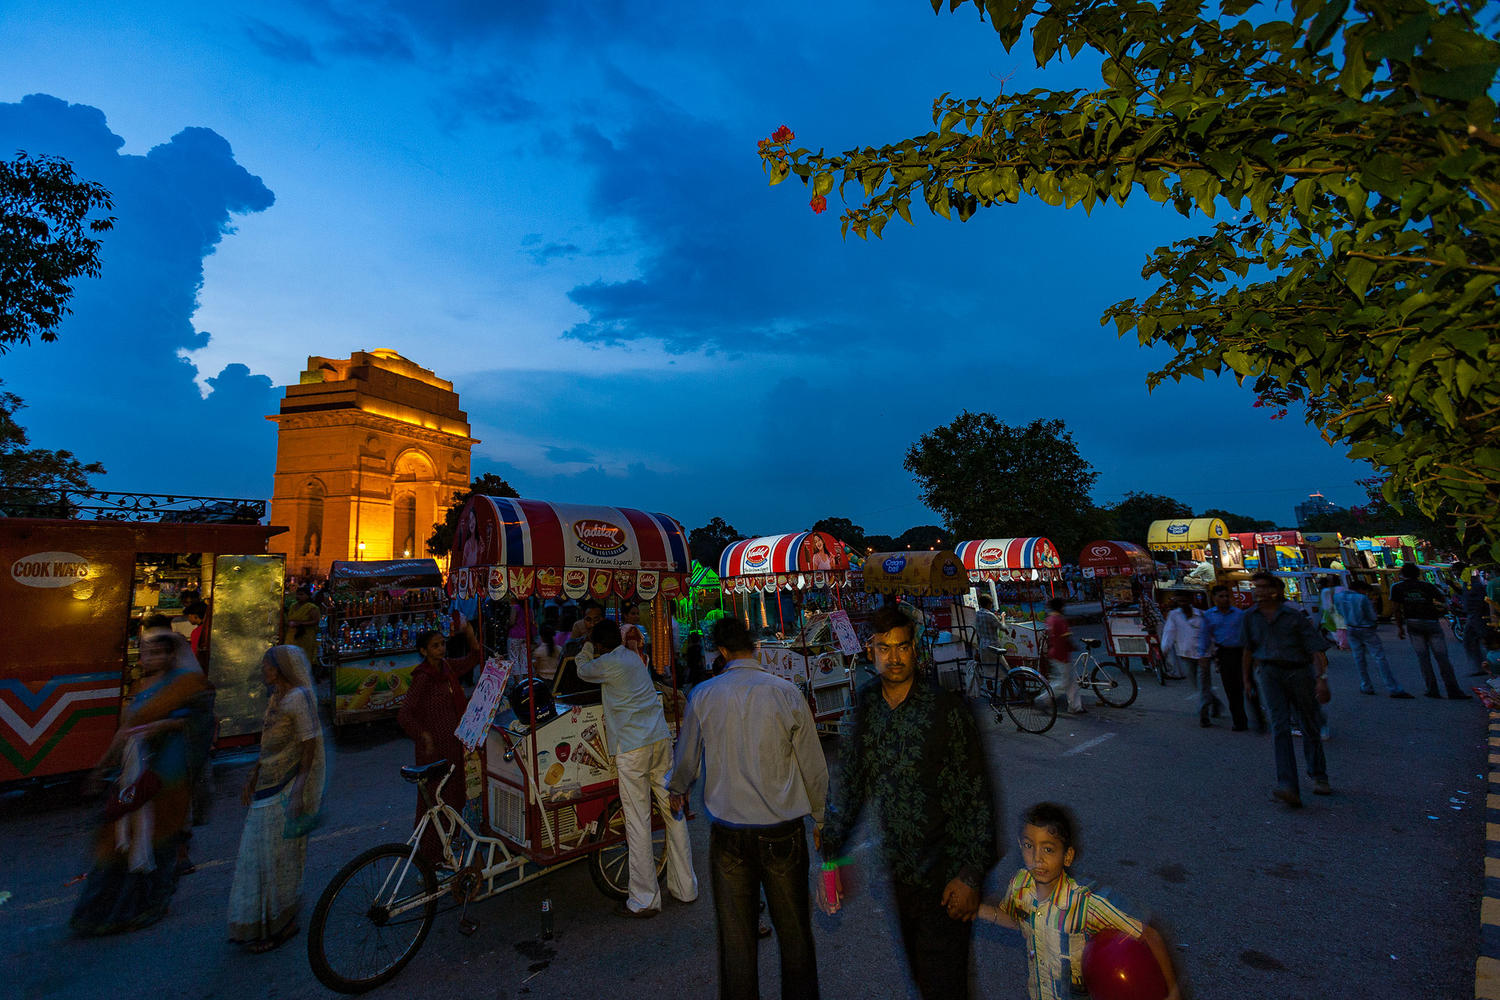 An evening at India Gate